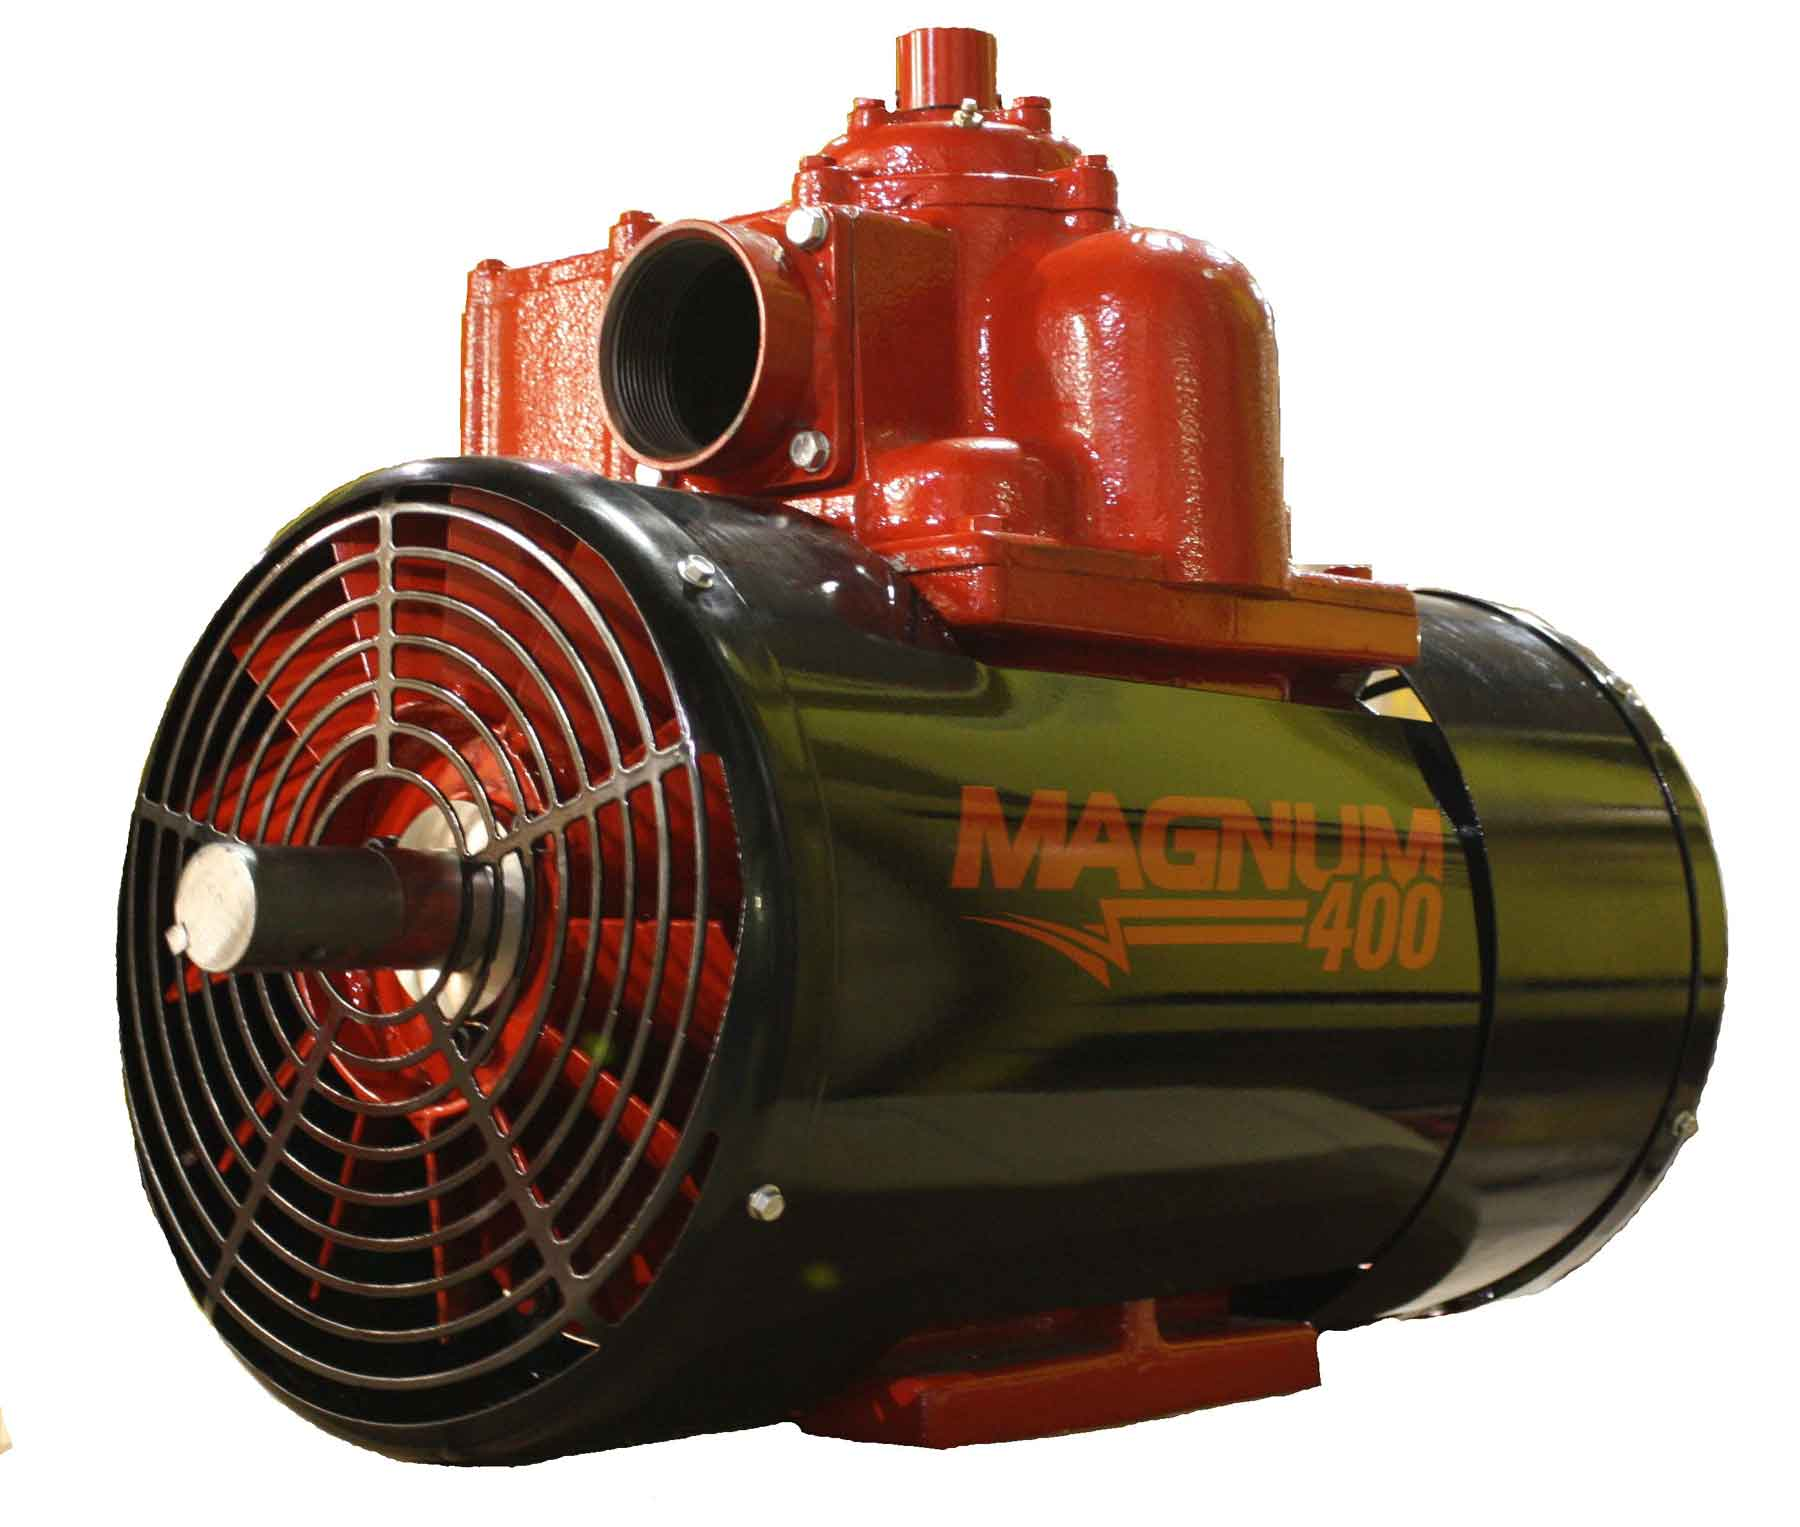 Magnum 400 Vacuum Pump by Nuhn Industries